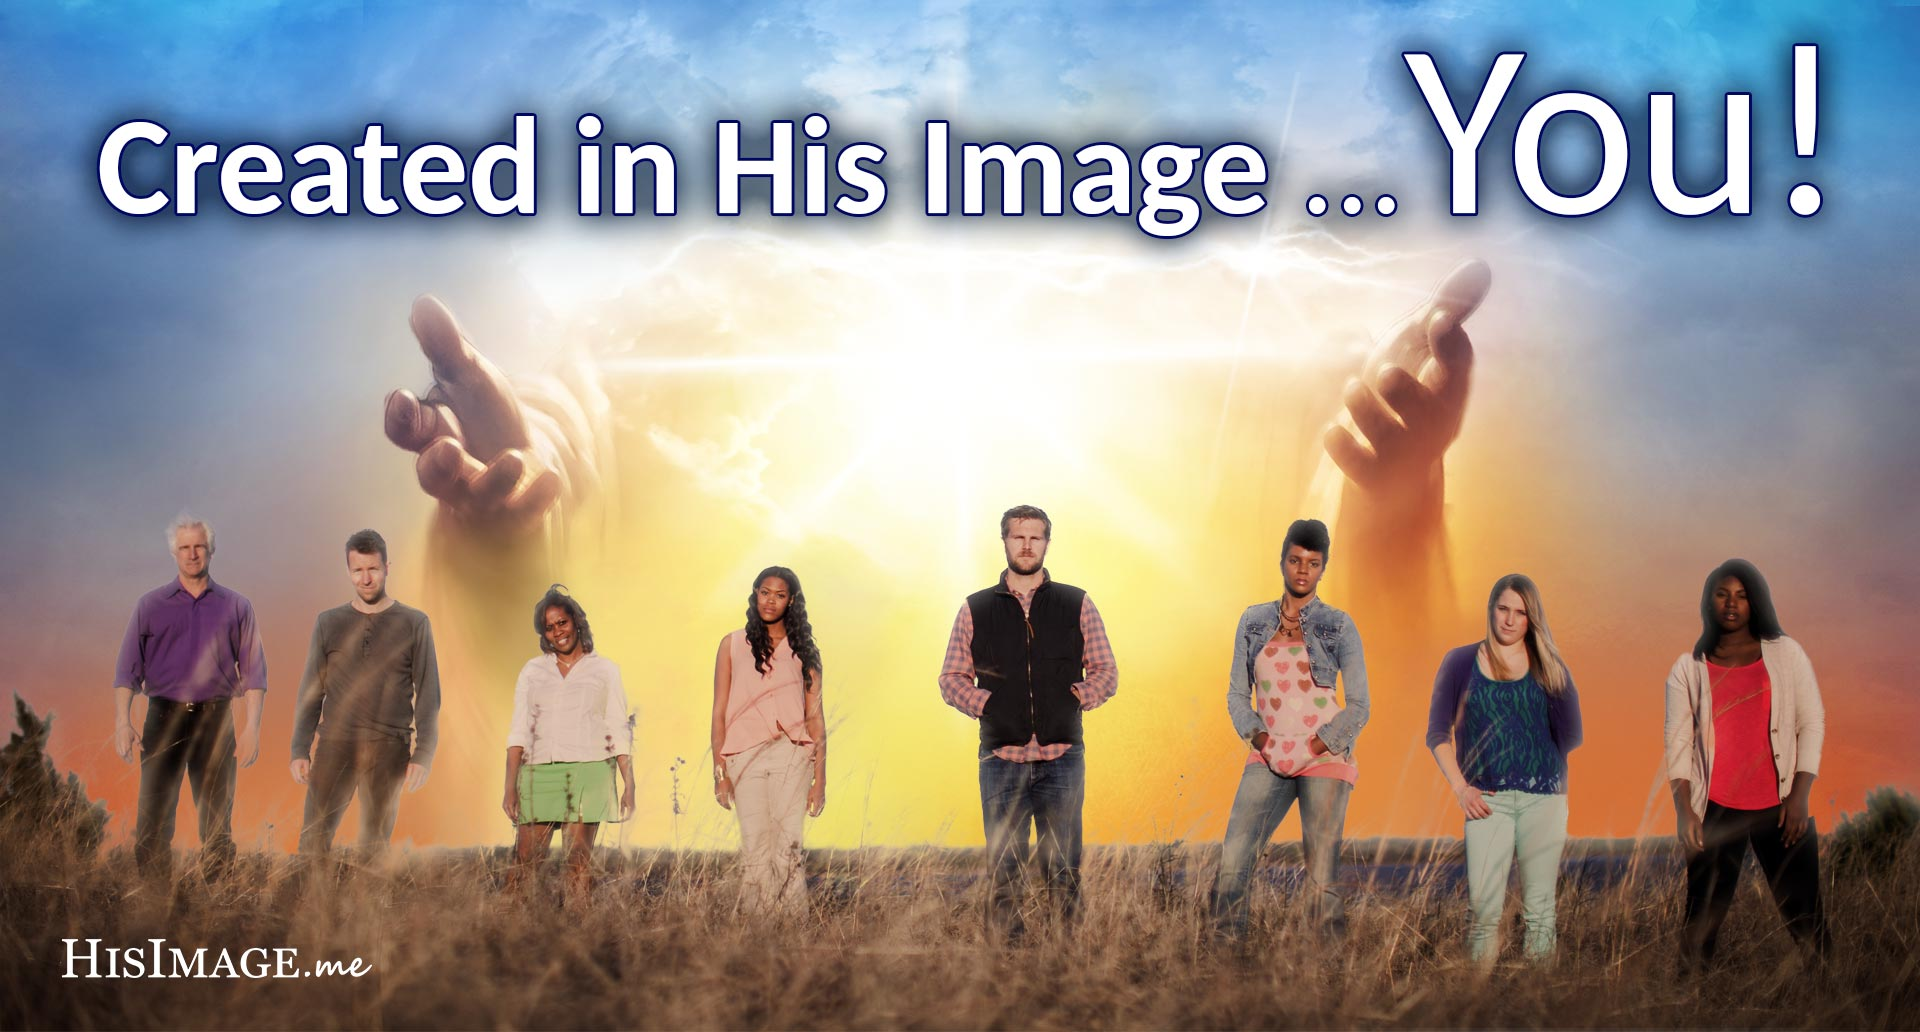 Created in His Image ... You! (Showing Group of People in front Jesus' hands coming out of sky)